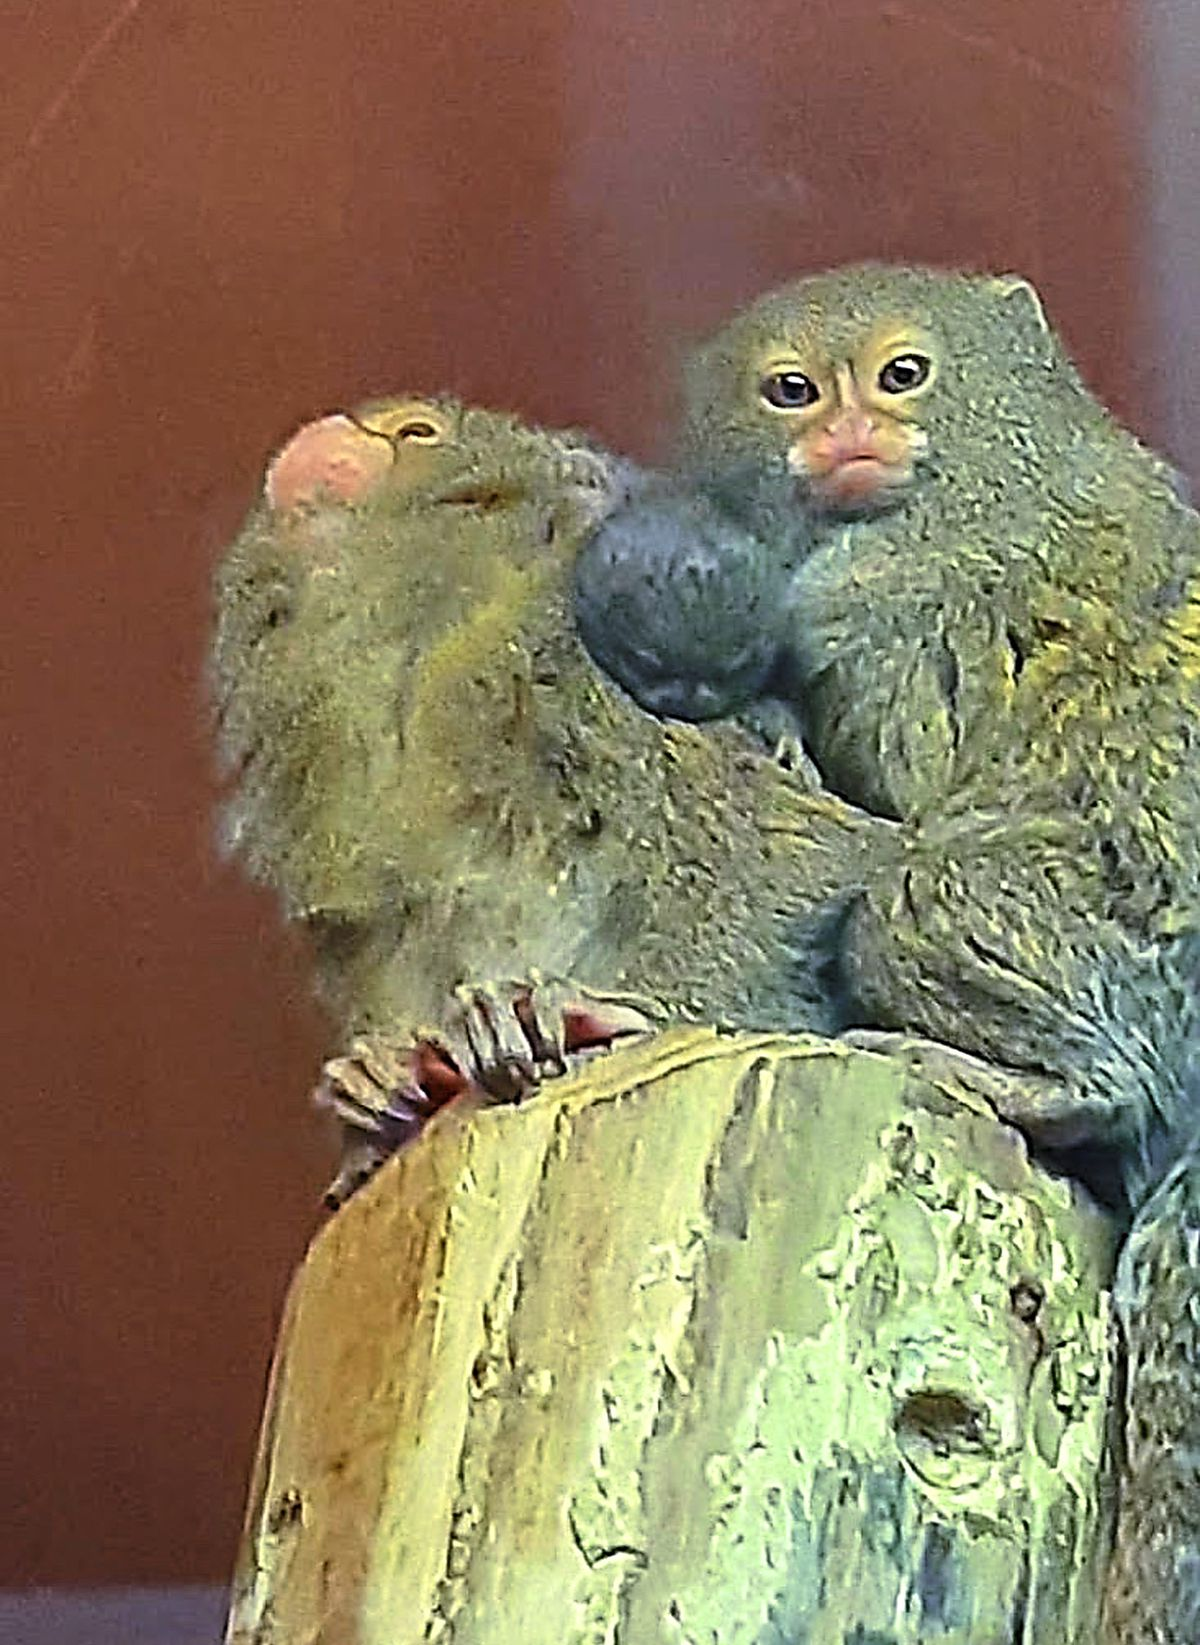 A pygmy marmoset baby inbetween a proud mum and dad at Dudley Zoo